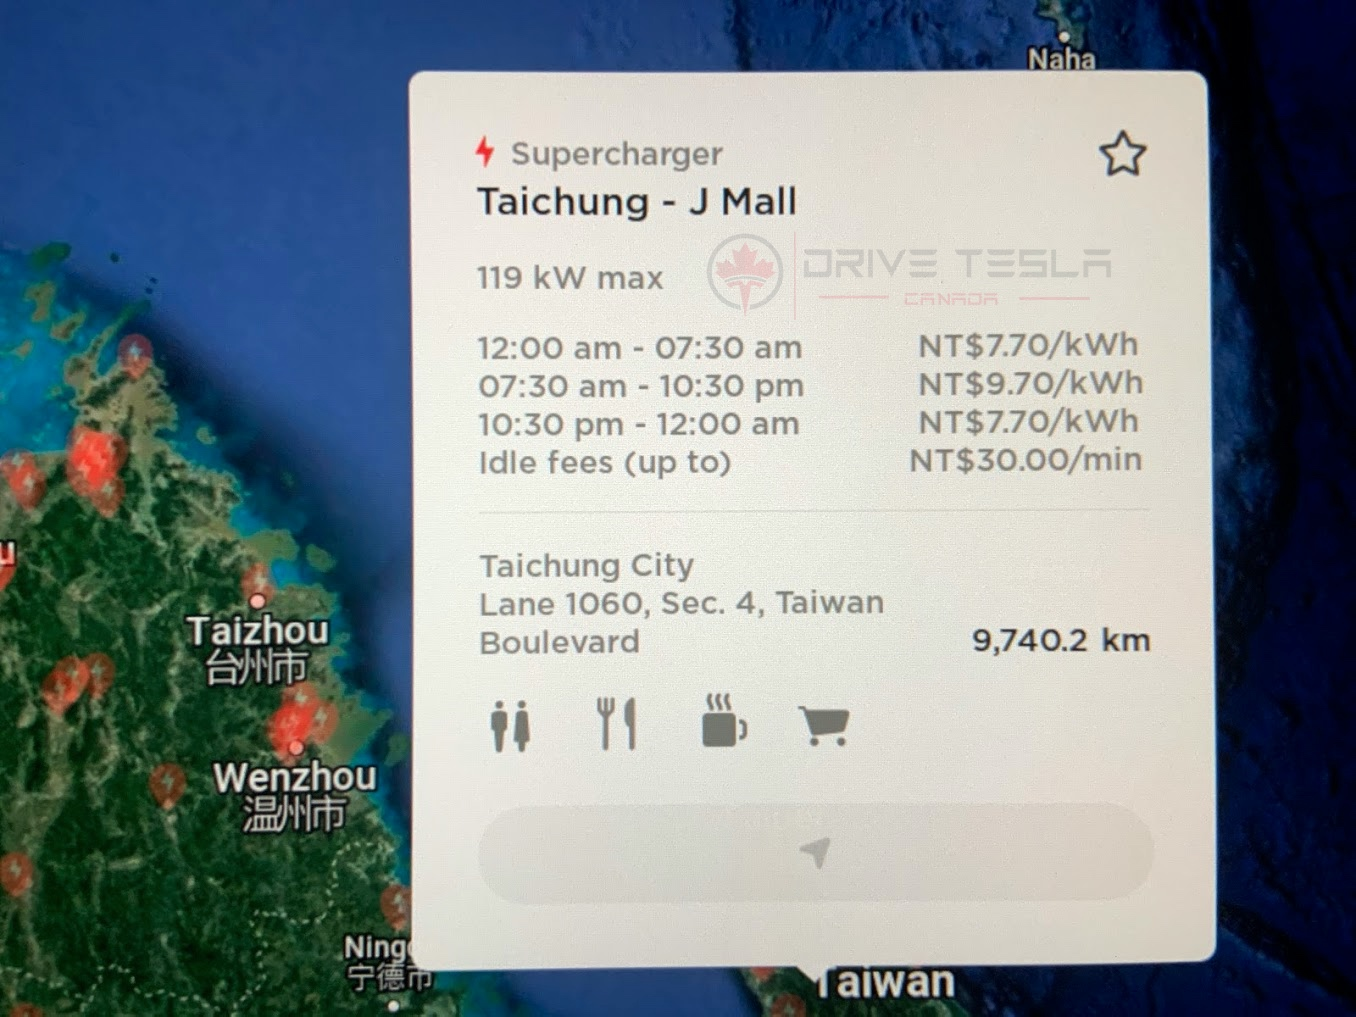 New Taiwan fees Supercharger